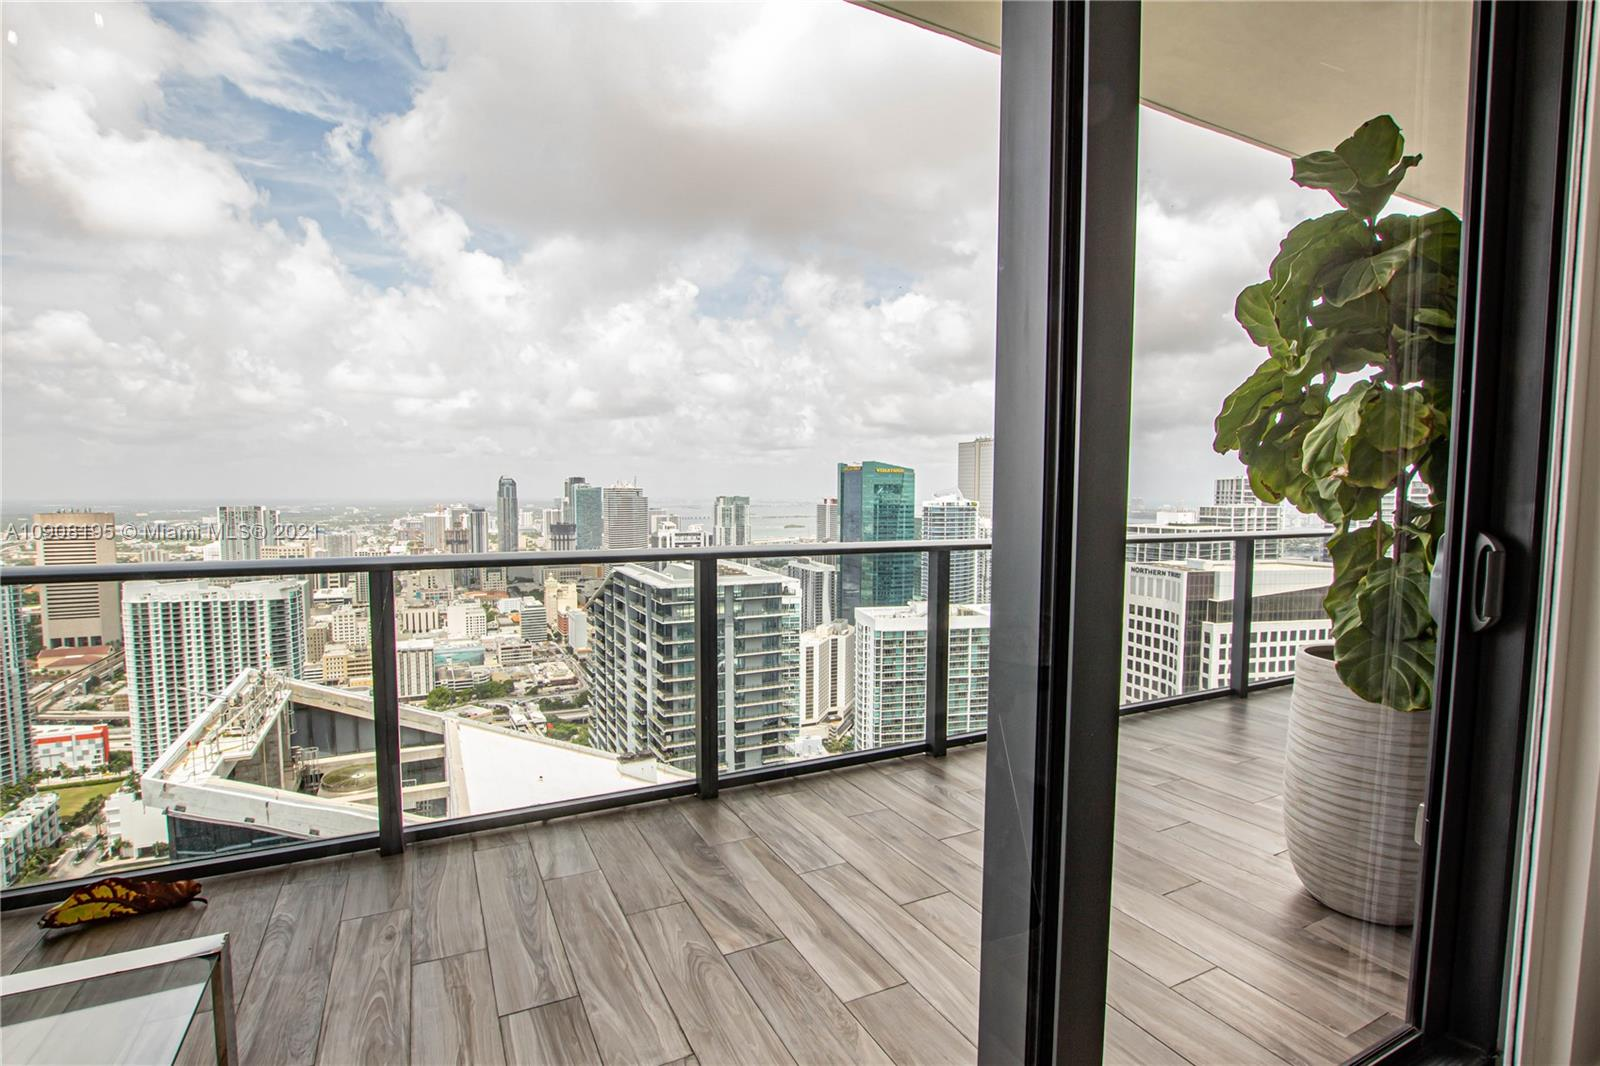 SLS LUX, best views of the city and the Miami River. Italkraft kitchen beautiful marble countertops & Sub-Zero appliances and tablet wireless control pad. Floor to ceiling windows throughout, private elevator foyer. Enjoy tennis court, rock-climbing wall, basketball court and full-service fitness center.